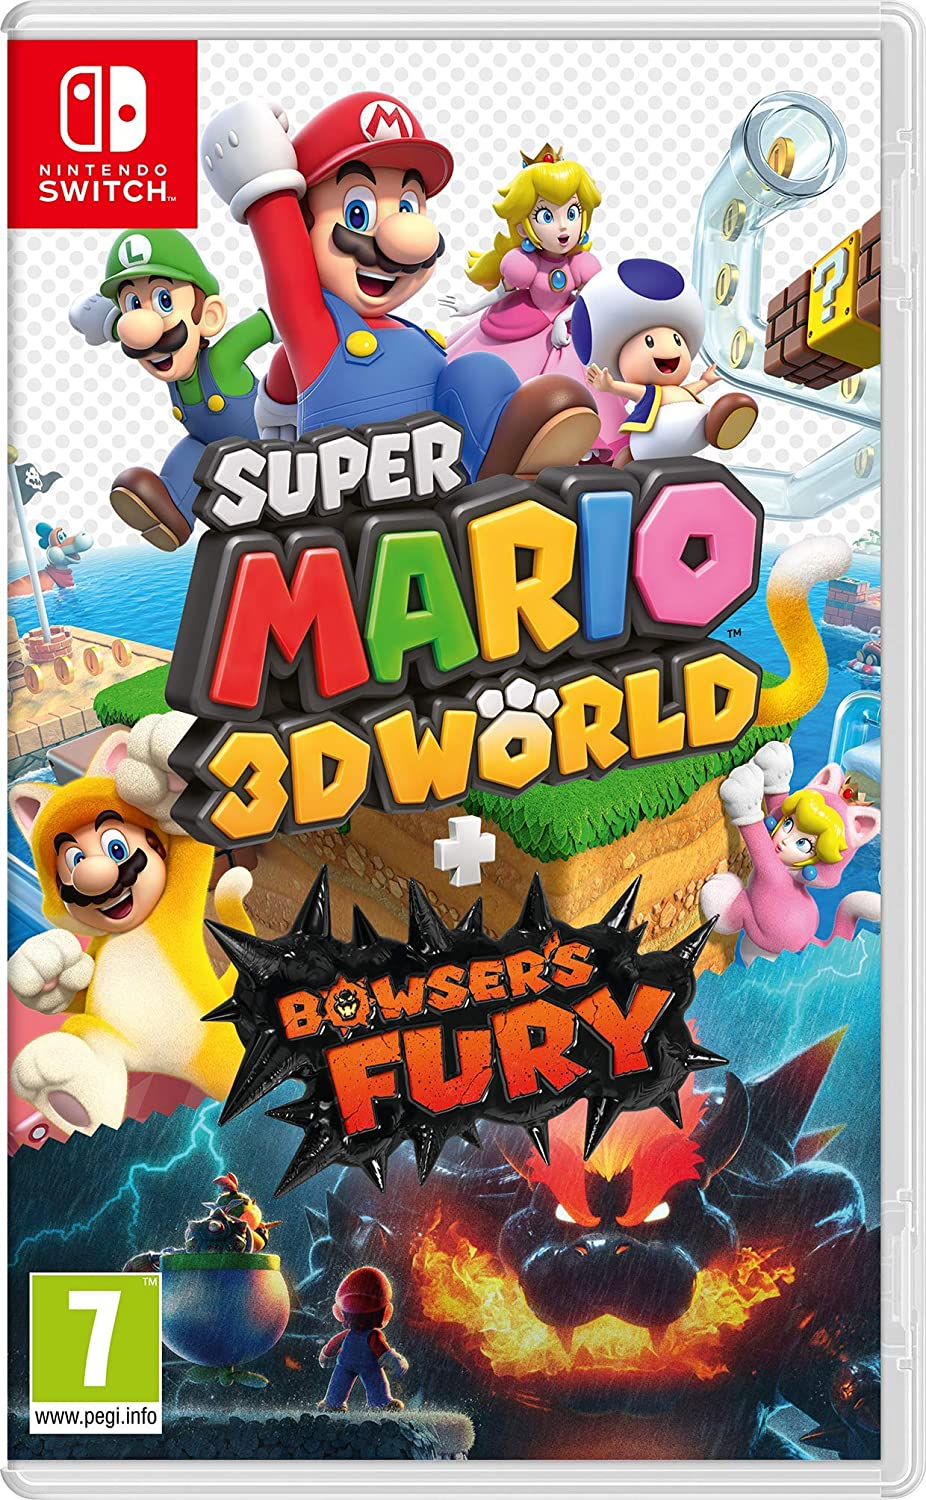 Super Mario 3D World + Bowser's Fury - Switch | Nintendo EAD. Programmeur